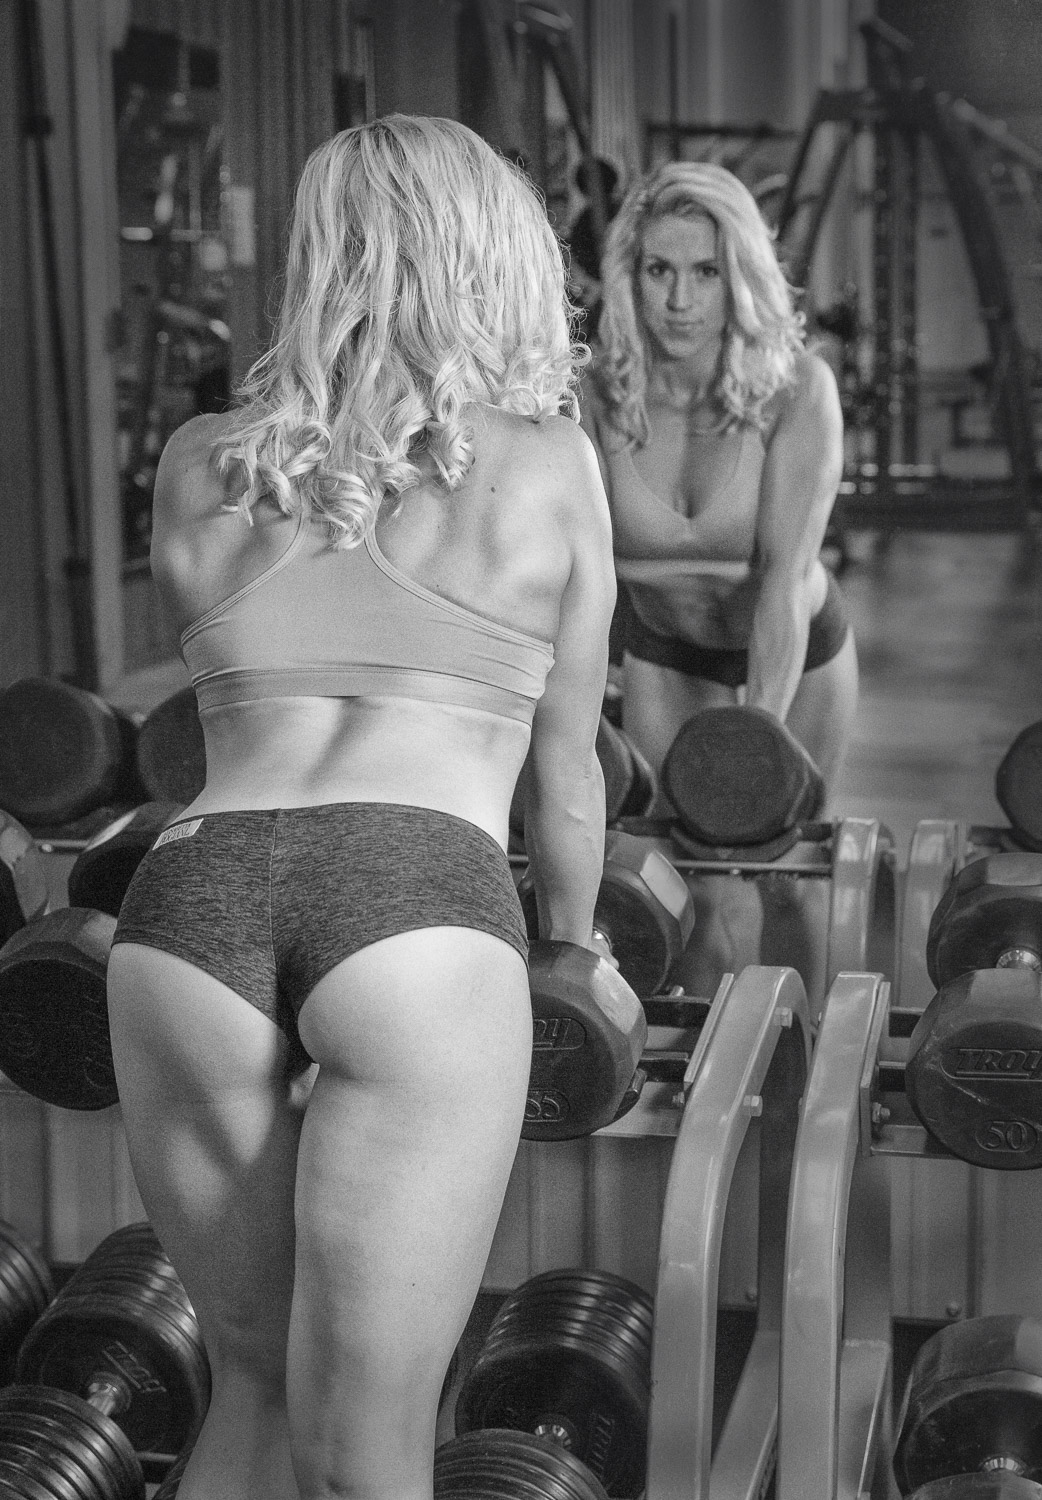 fitness_photography_gym_weights_mirror.jpg